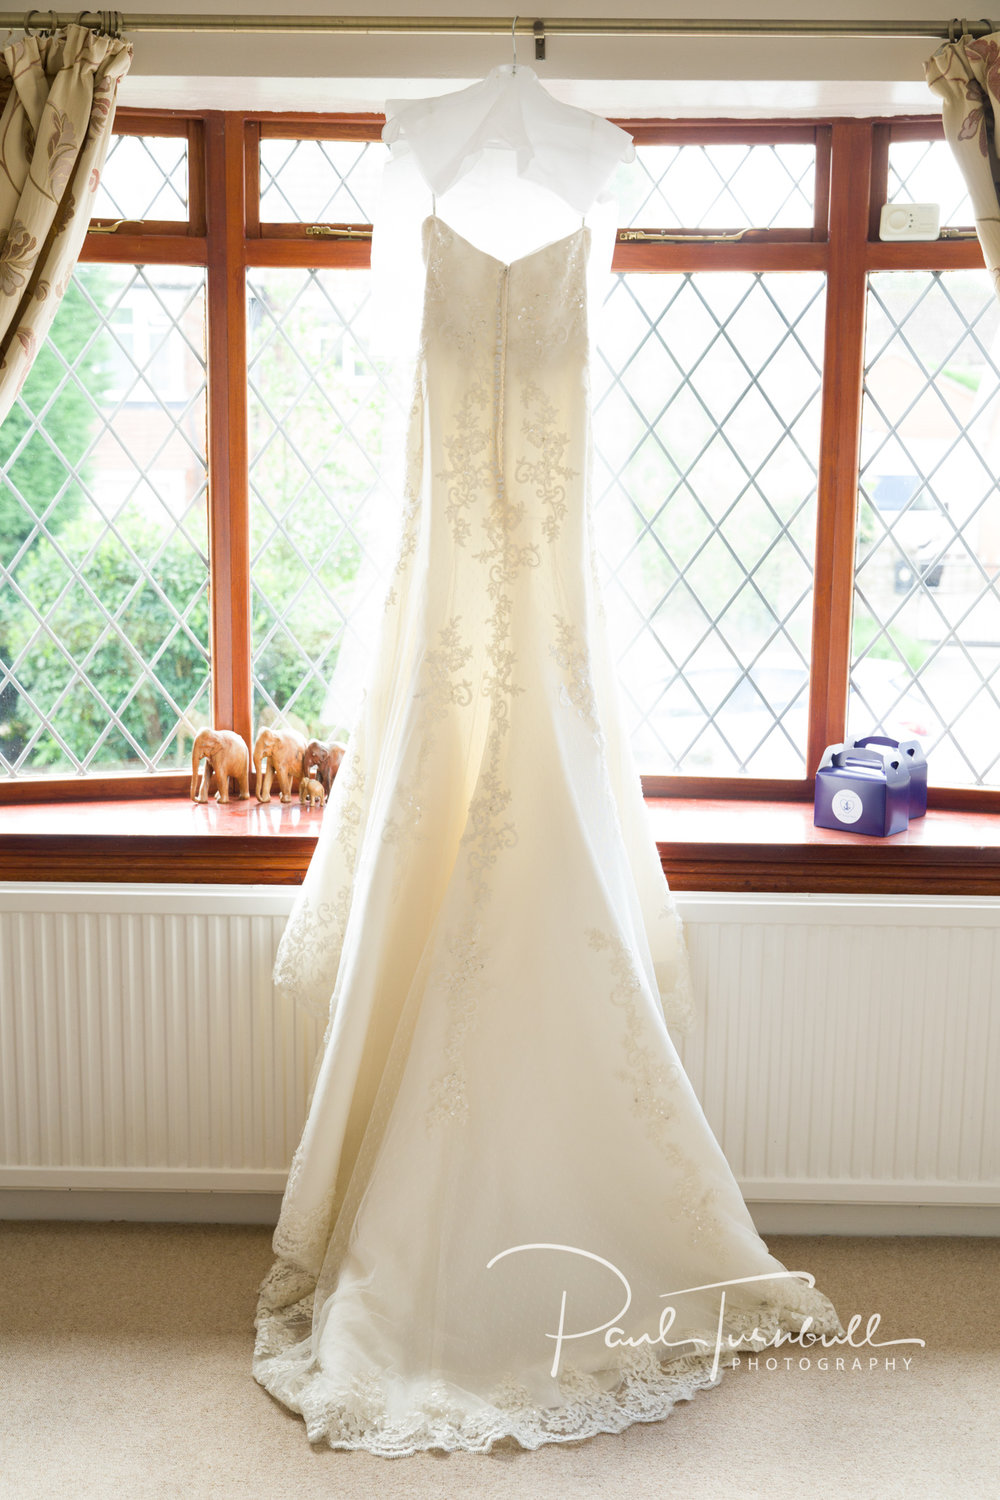 wedding-photographer-south-dalton-walkington-yorkshire-emma-james-010.jpg